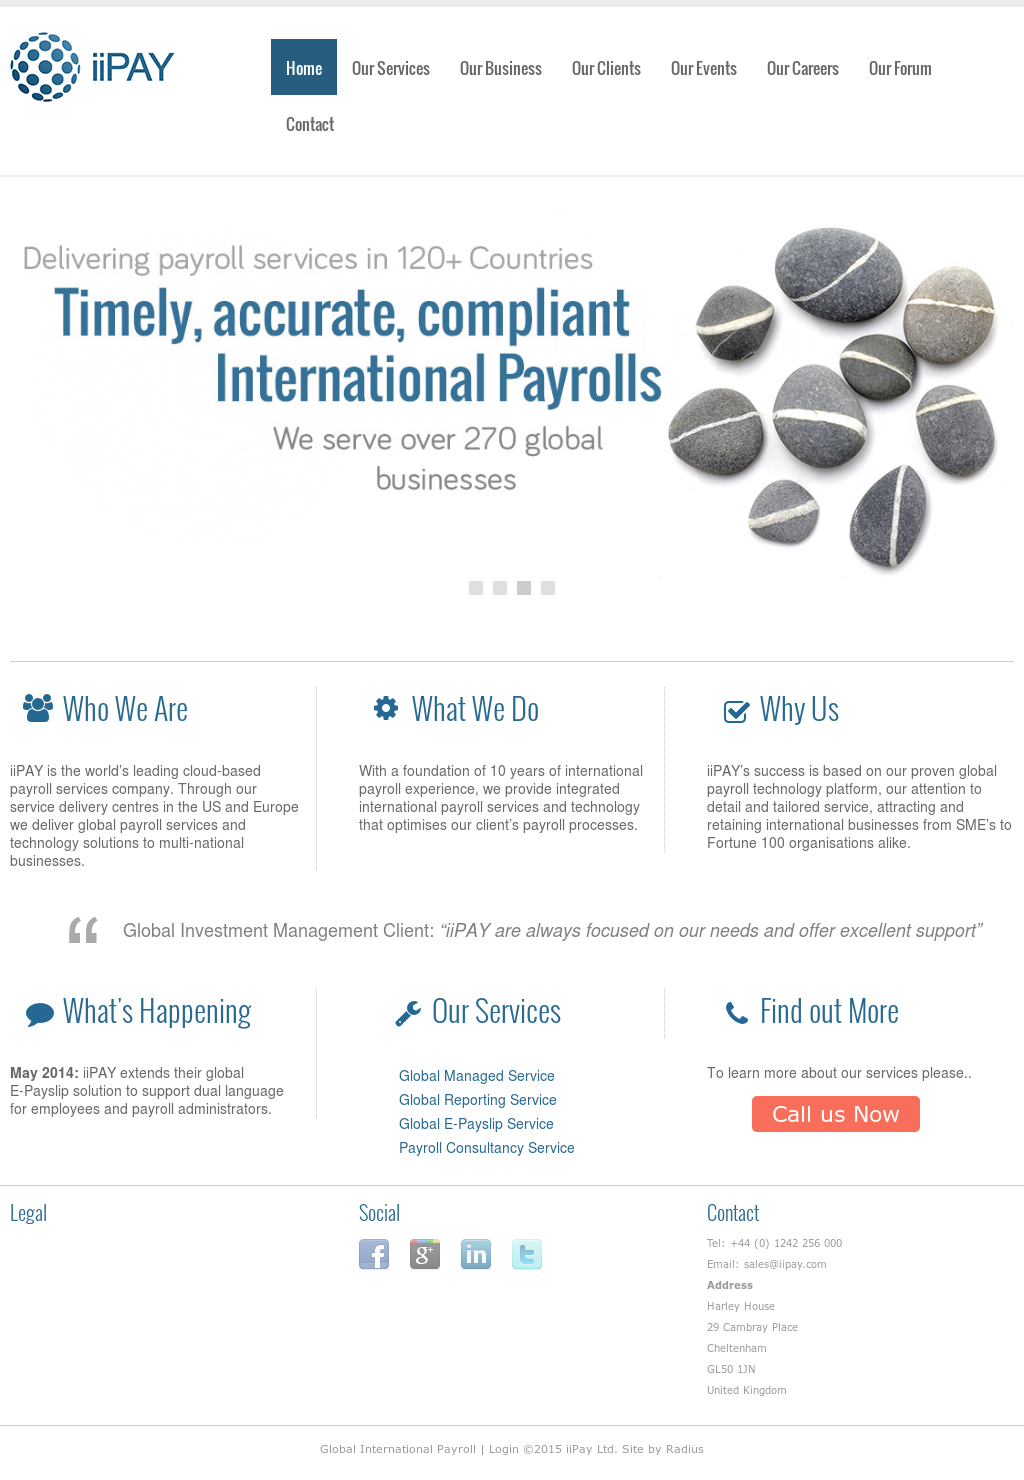 iiPay Competitors, Revenue and Employees - Owler Company Profile